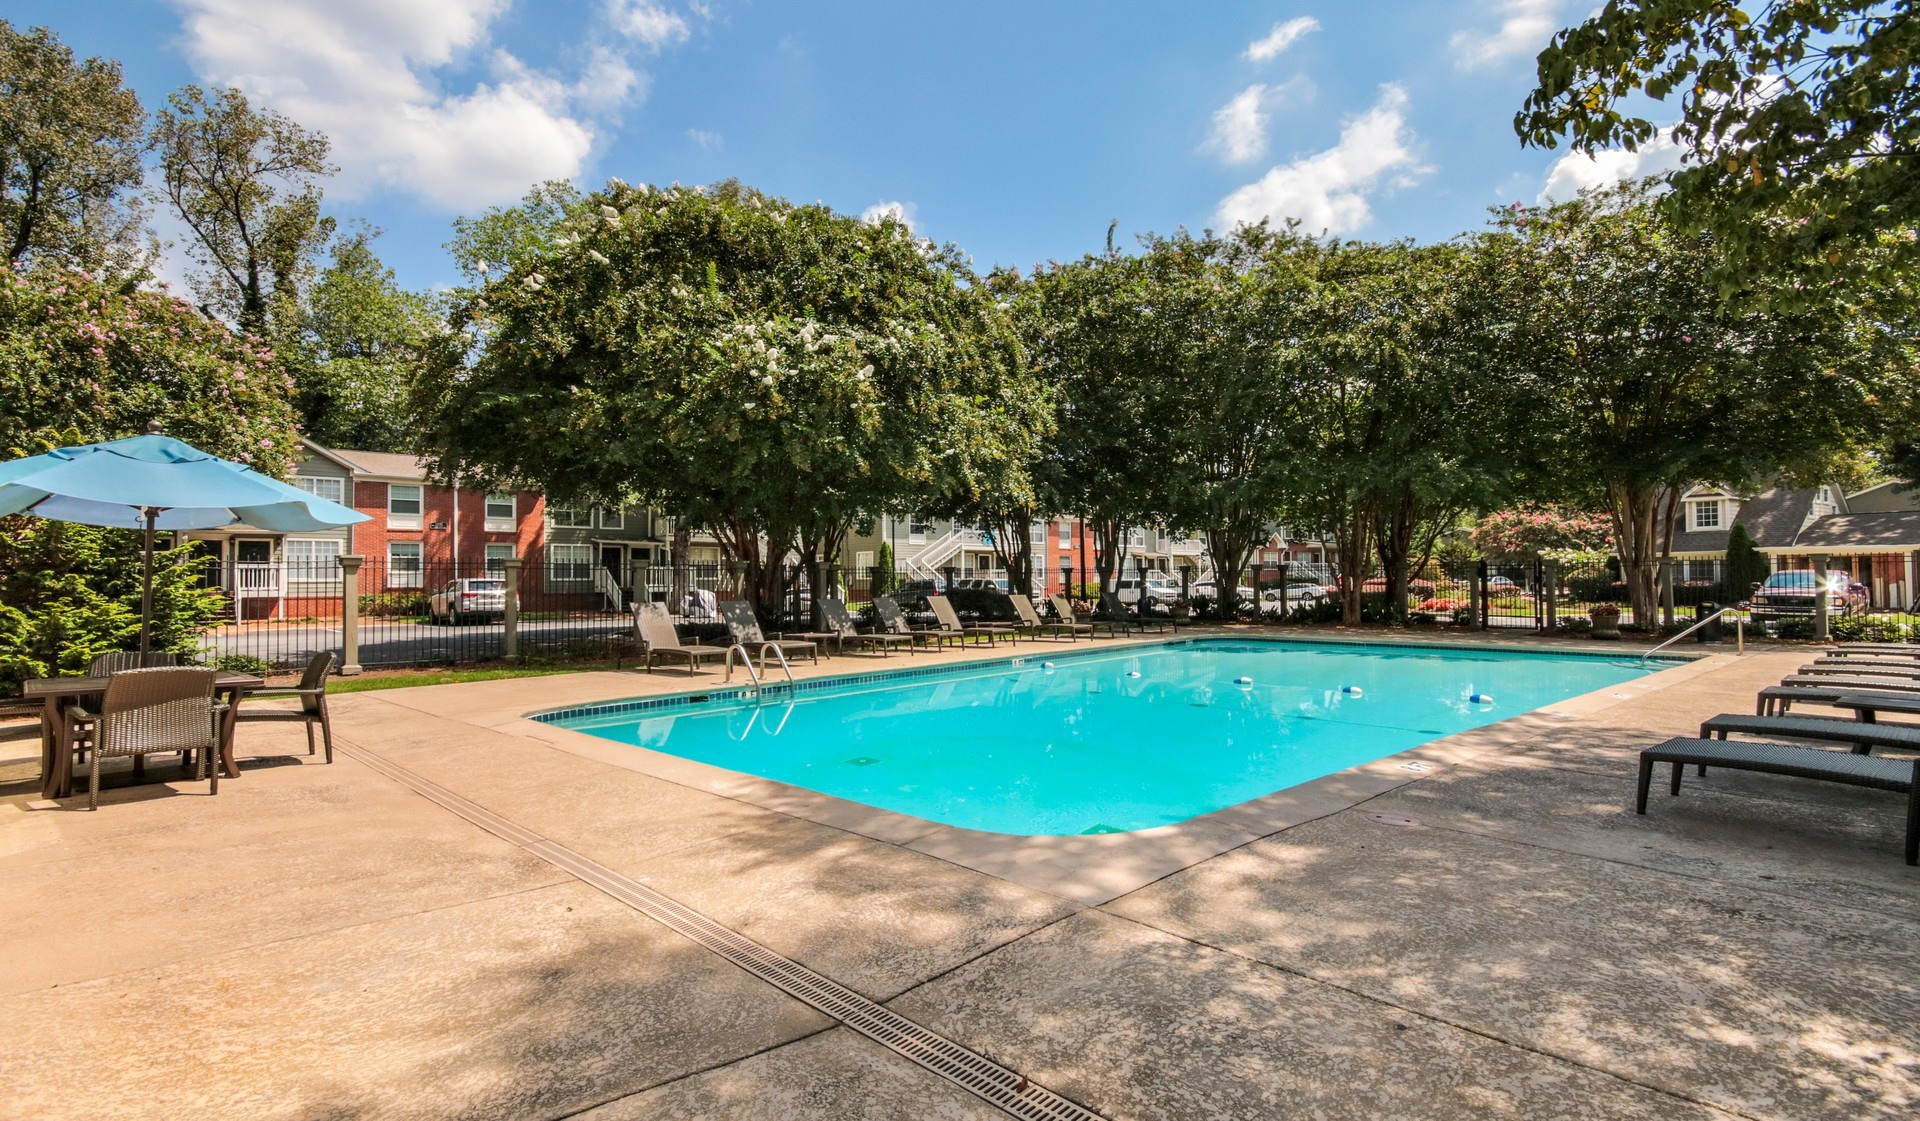 Peachtree Park Apartments